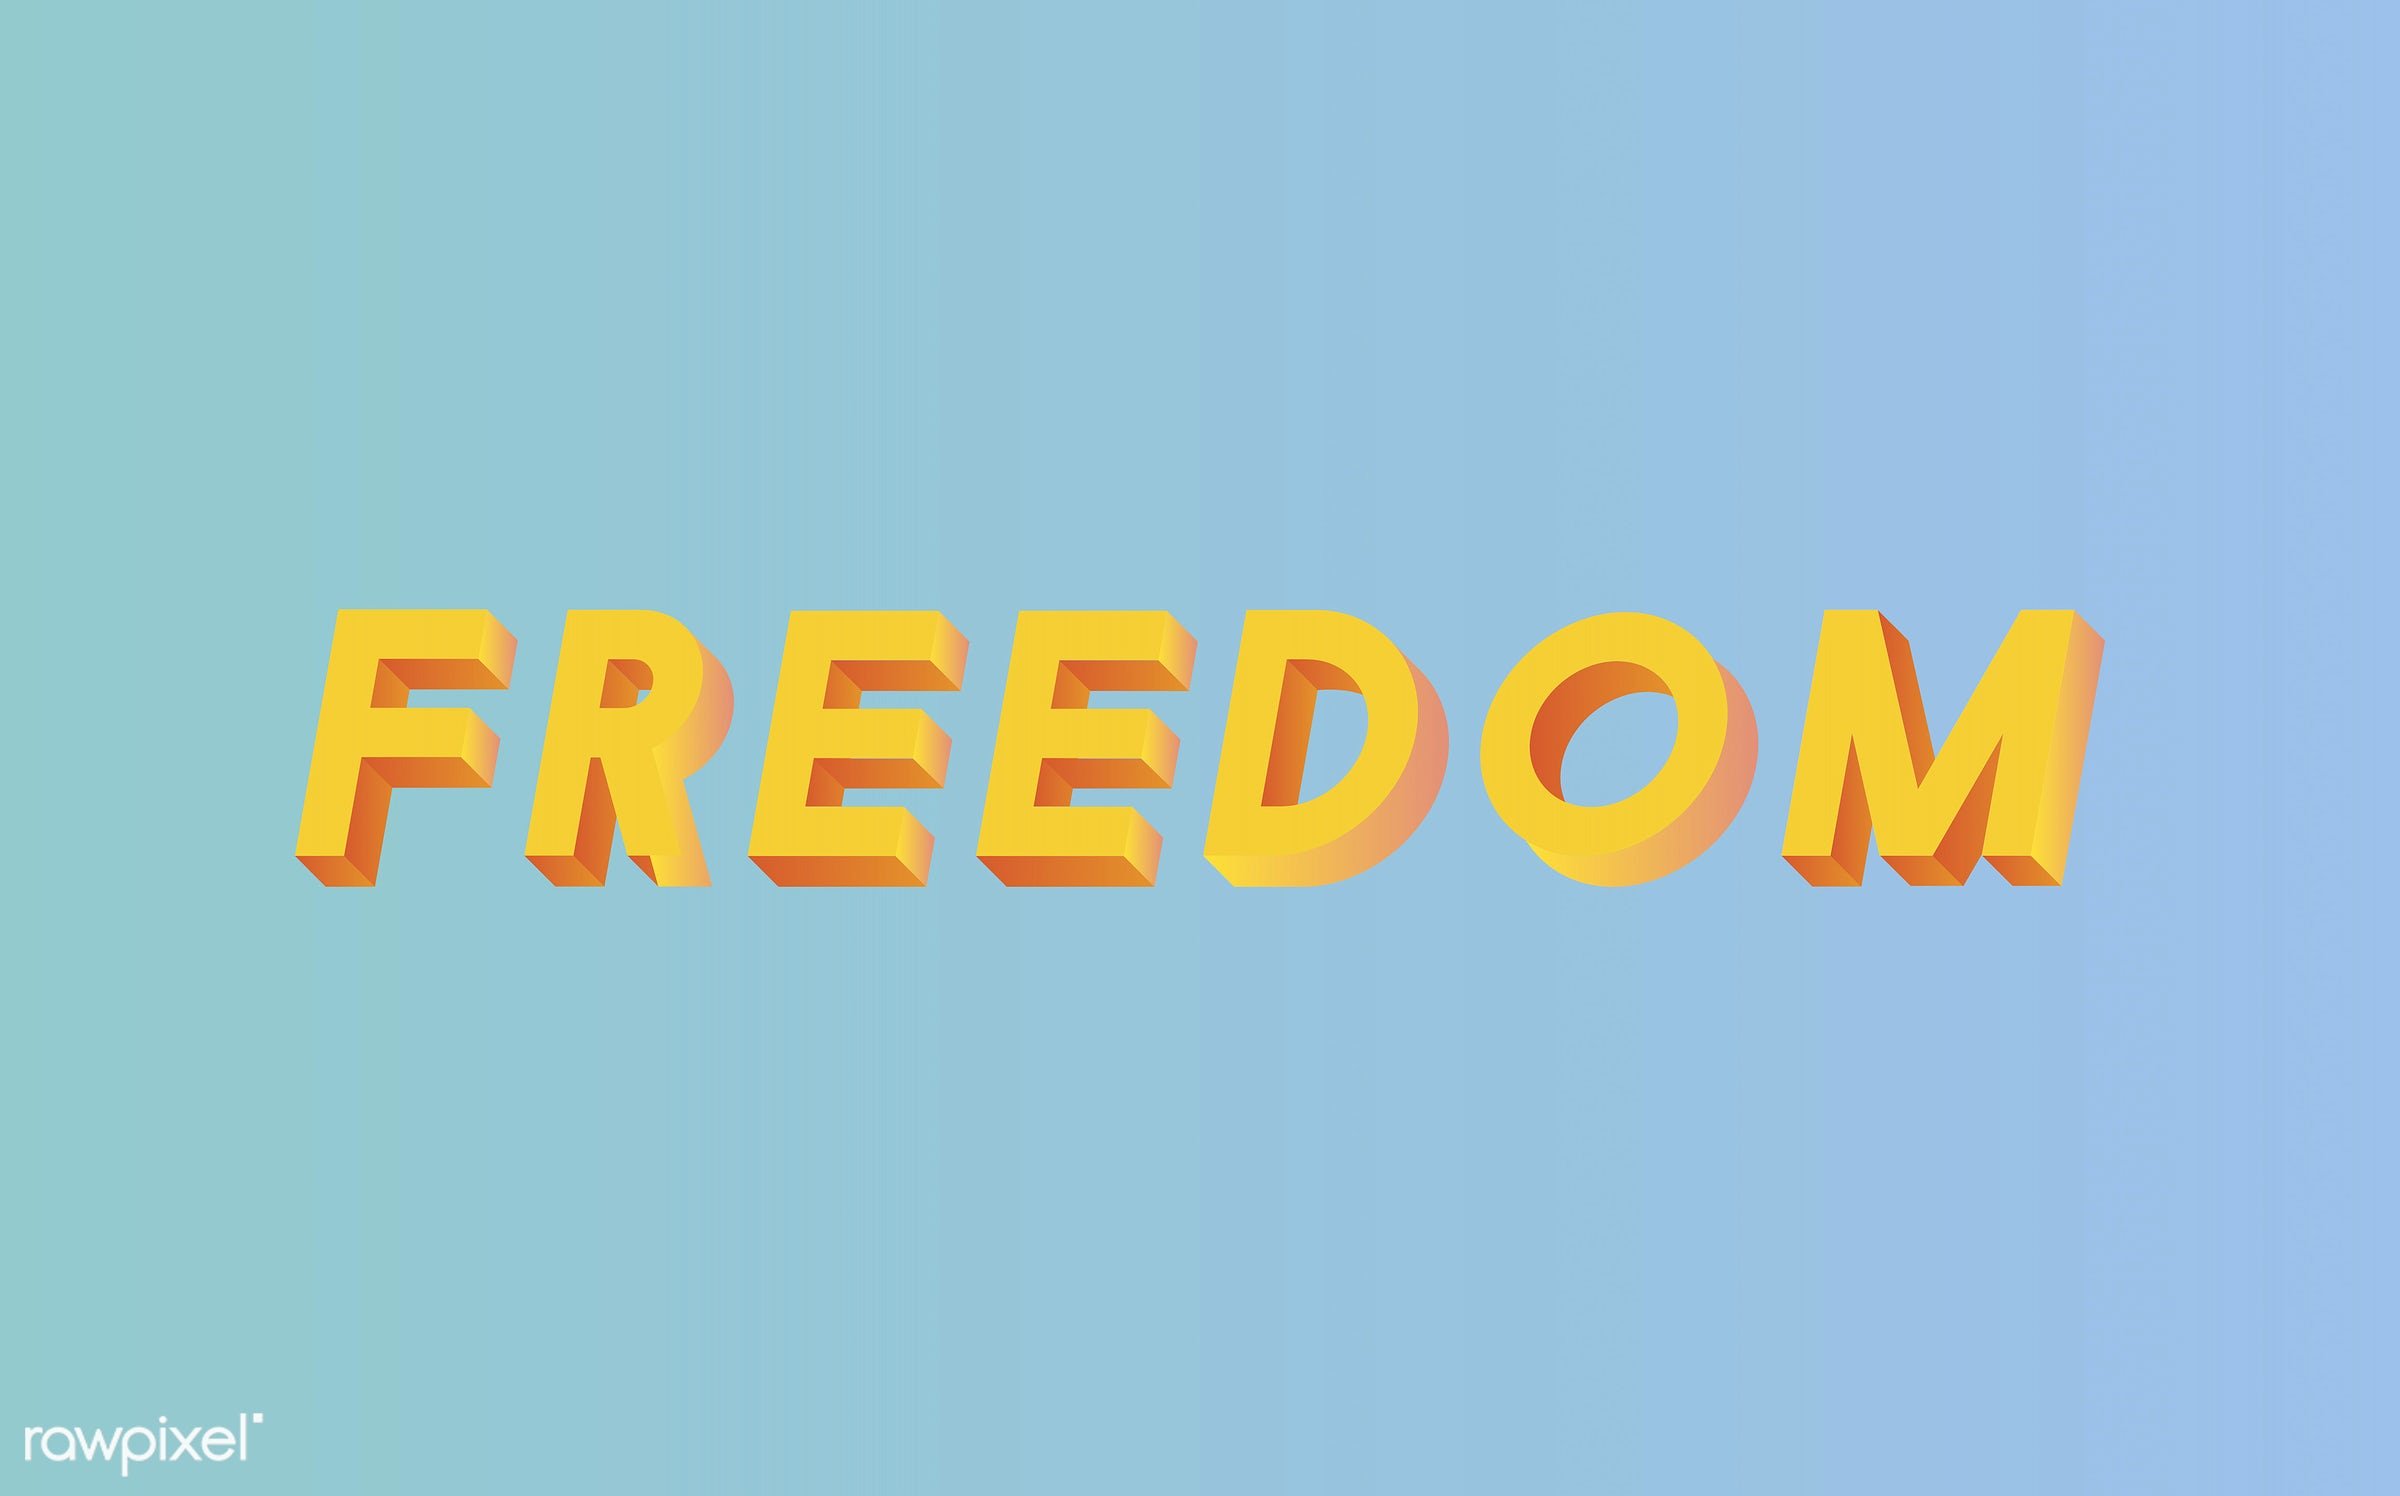 neon, colorful, 3d, three dimensional, vector, illustration, graphic, word, blue, yellow, freedom, free